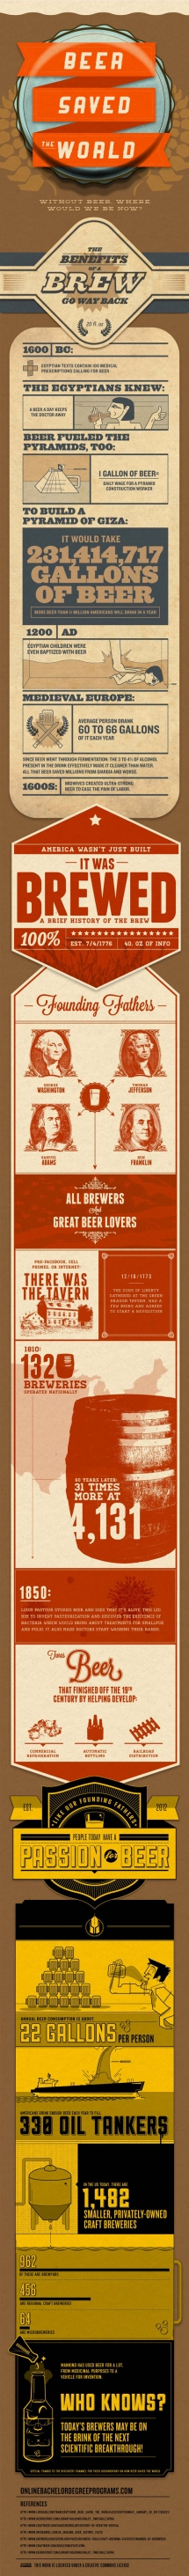 History of Beer in an Inforgraphic - Fun History